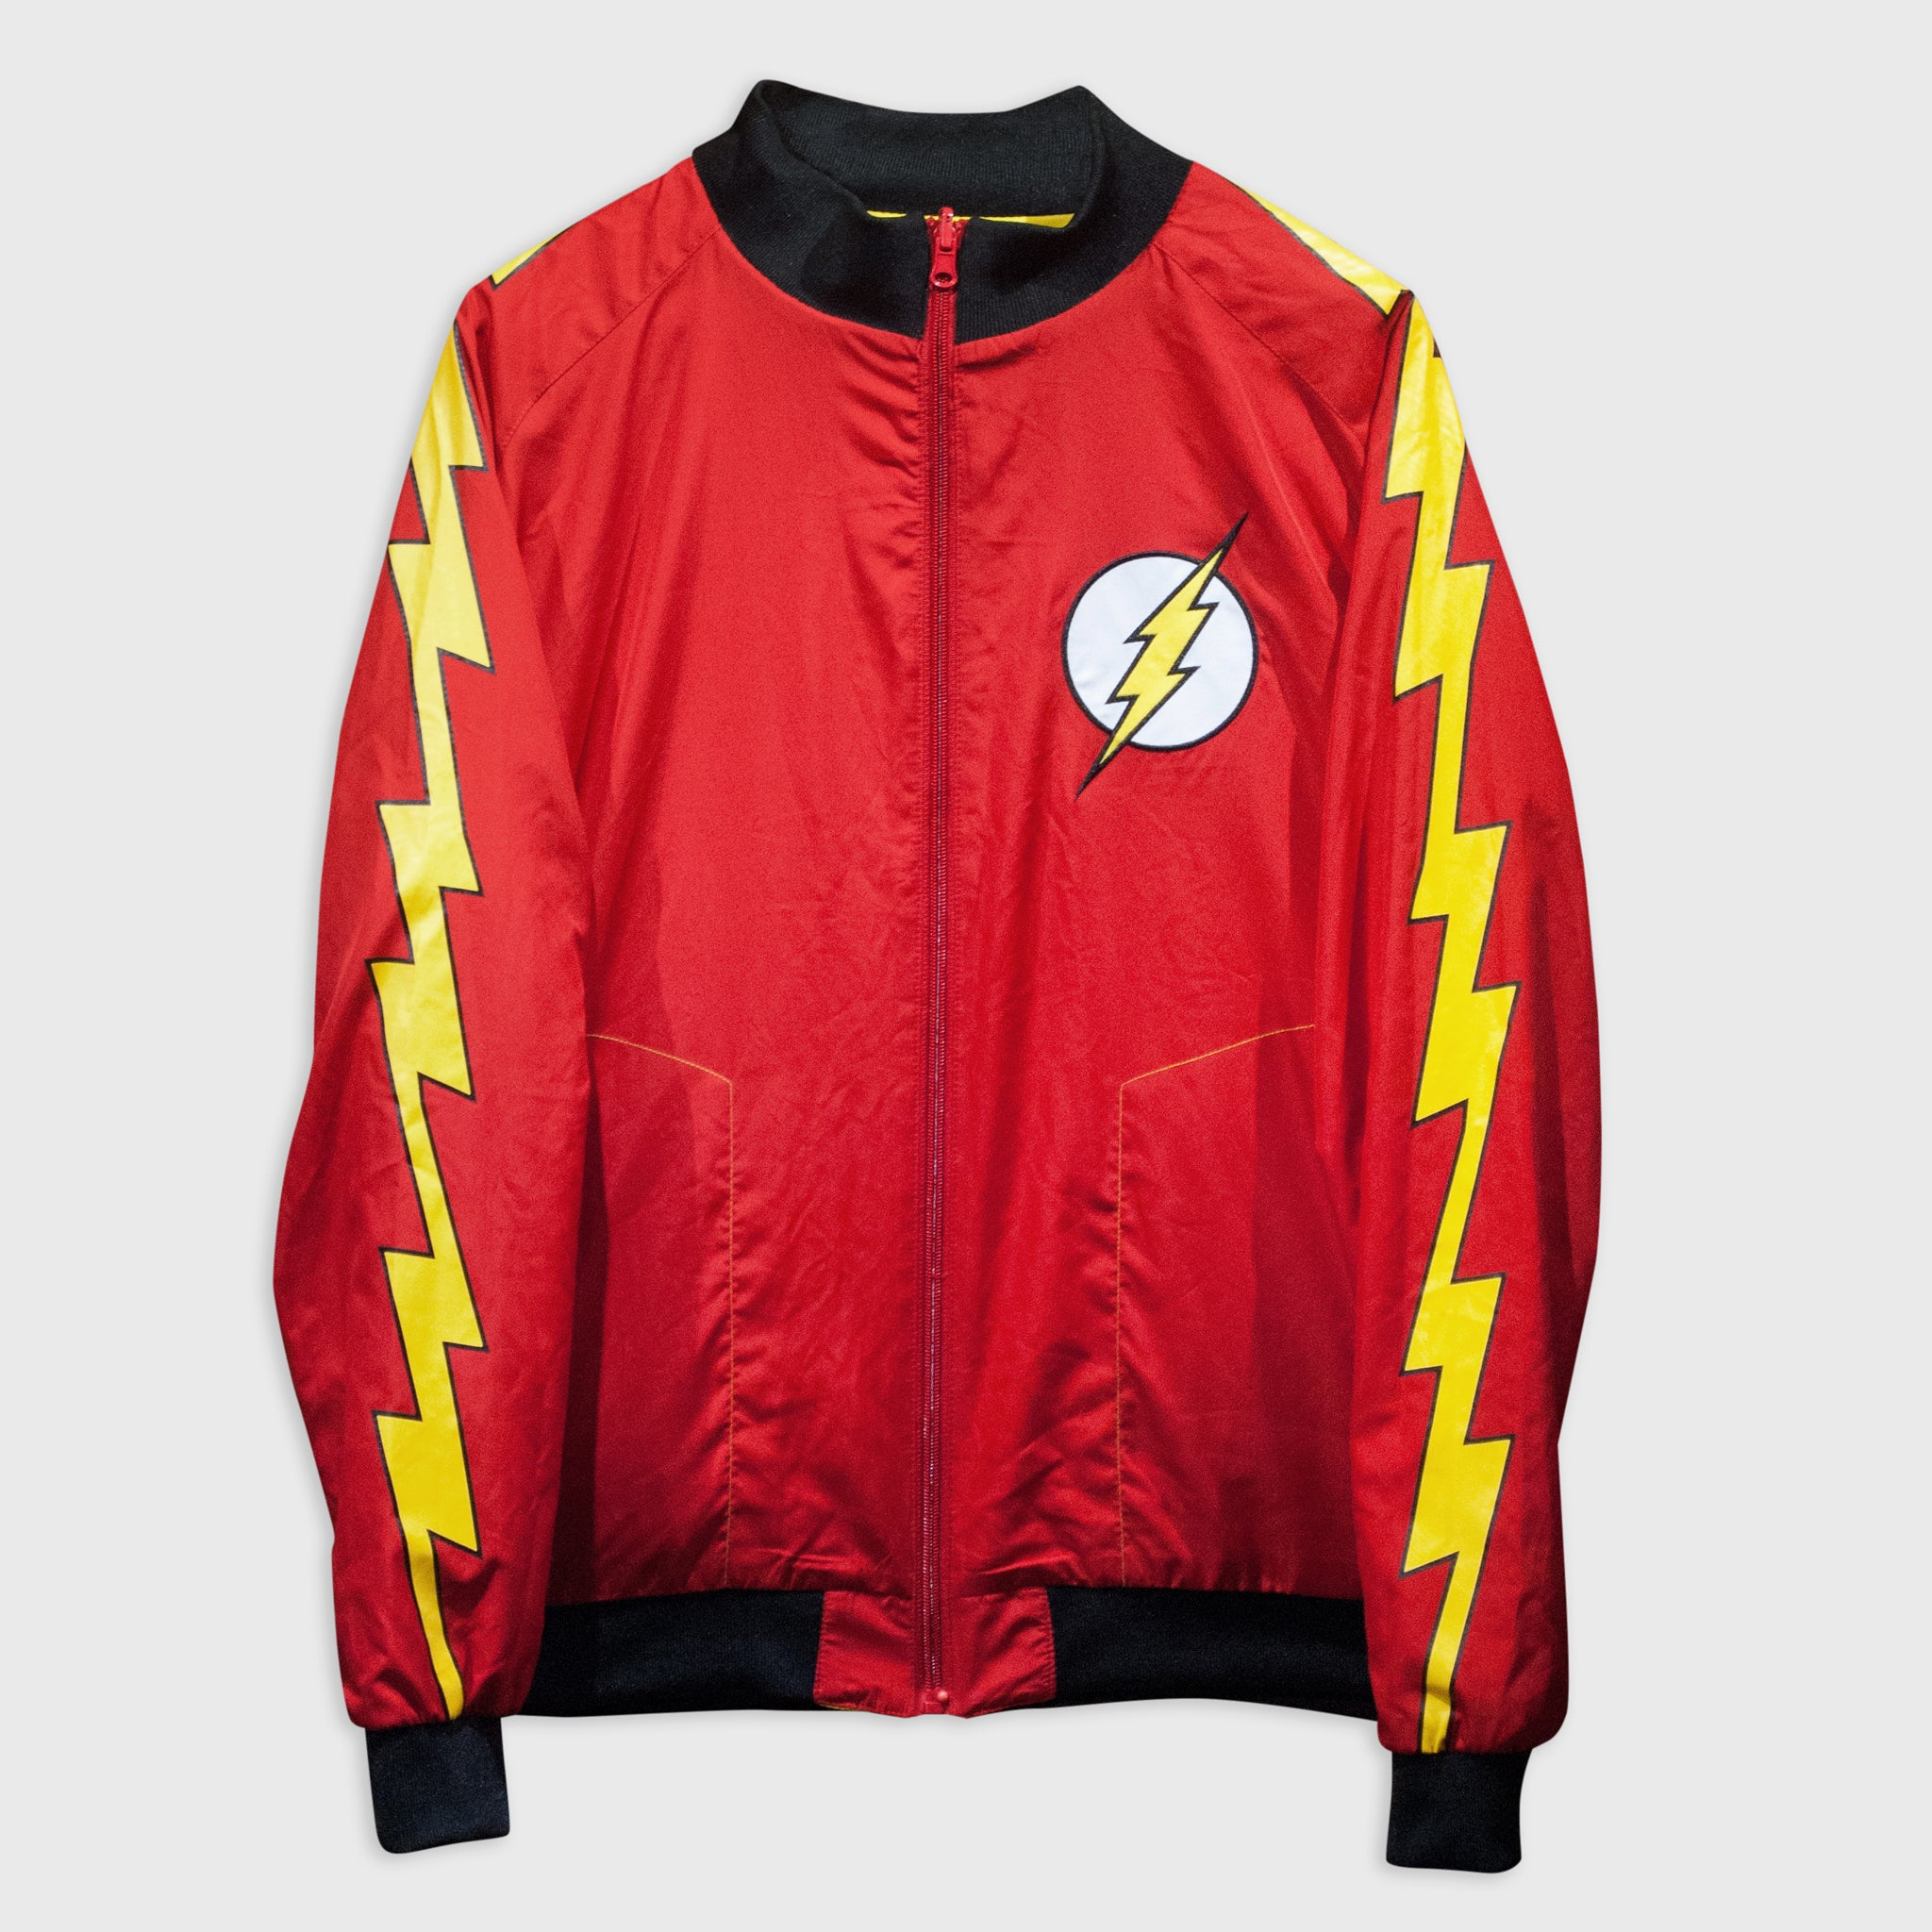 world's finest the collection collectible dc comics justice league apparel jacket track jacket reversable the flash